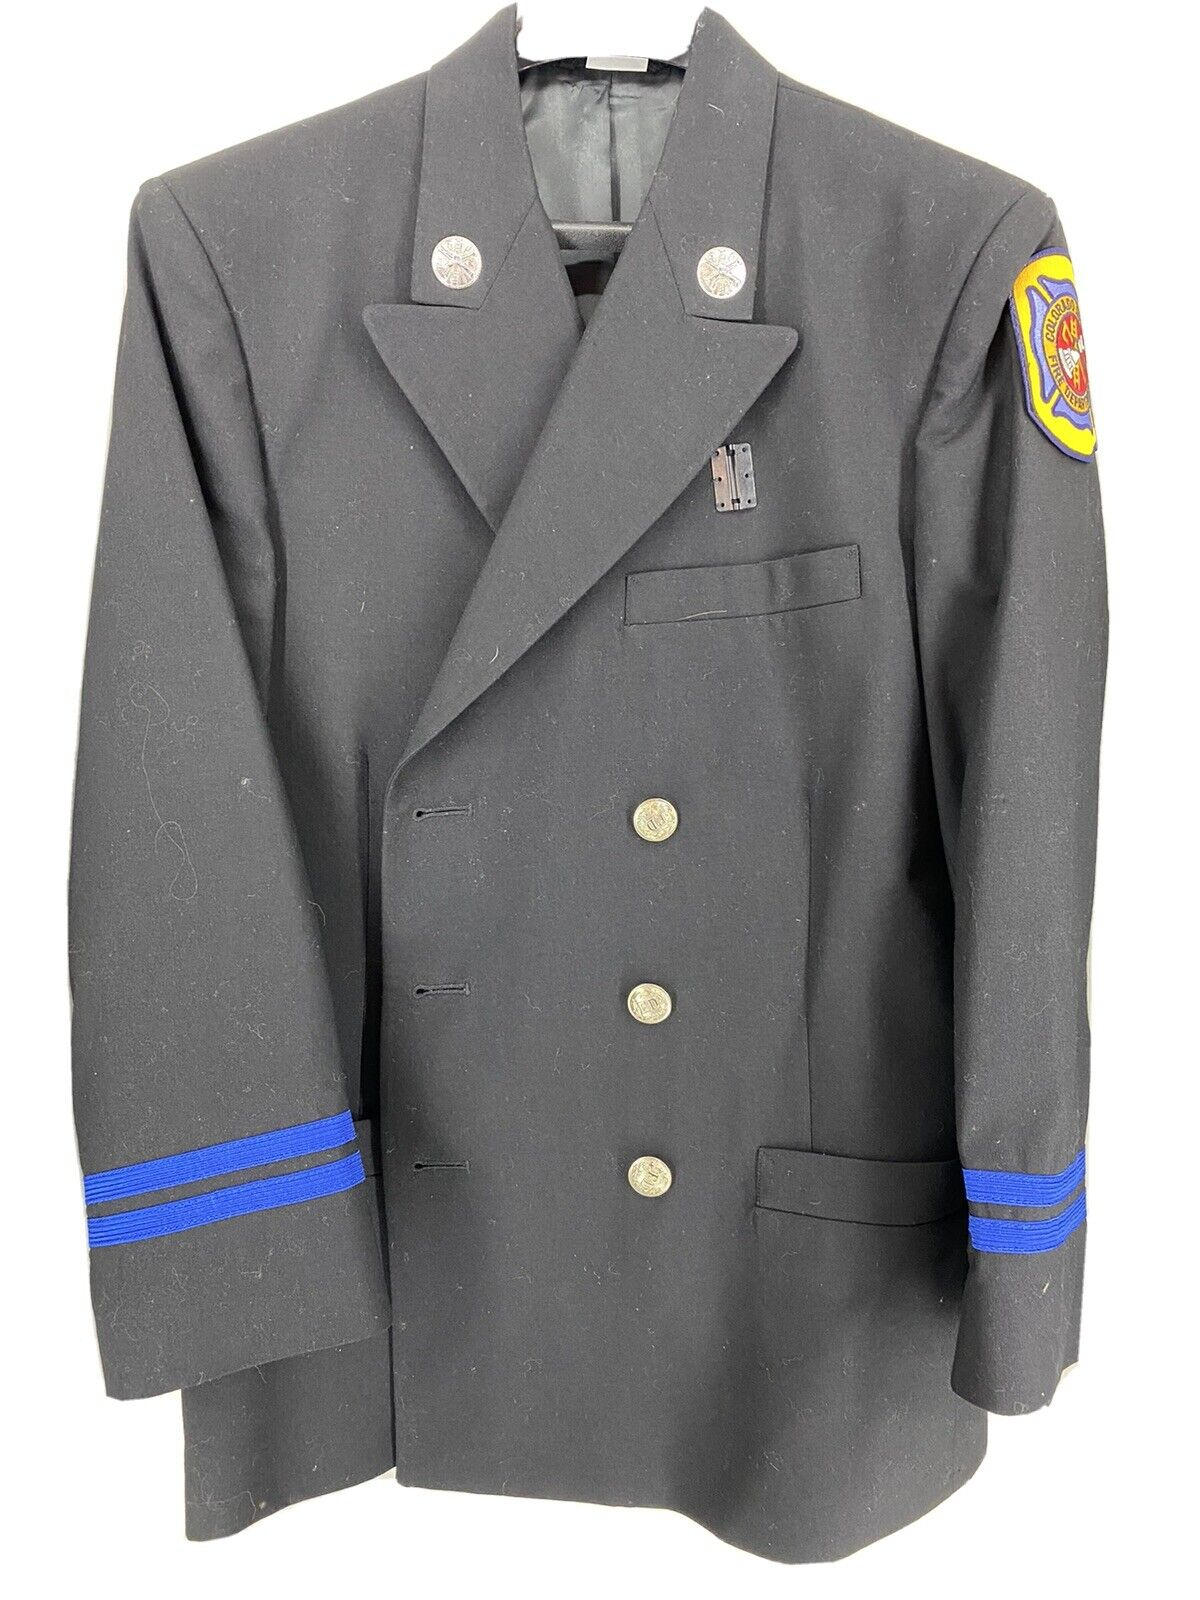 Firefighter Formal Wear Dress Blues With Hat and Accessories 40R